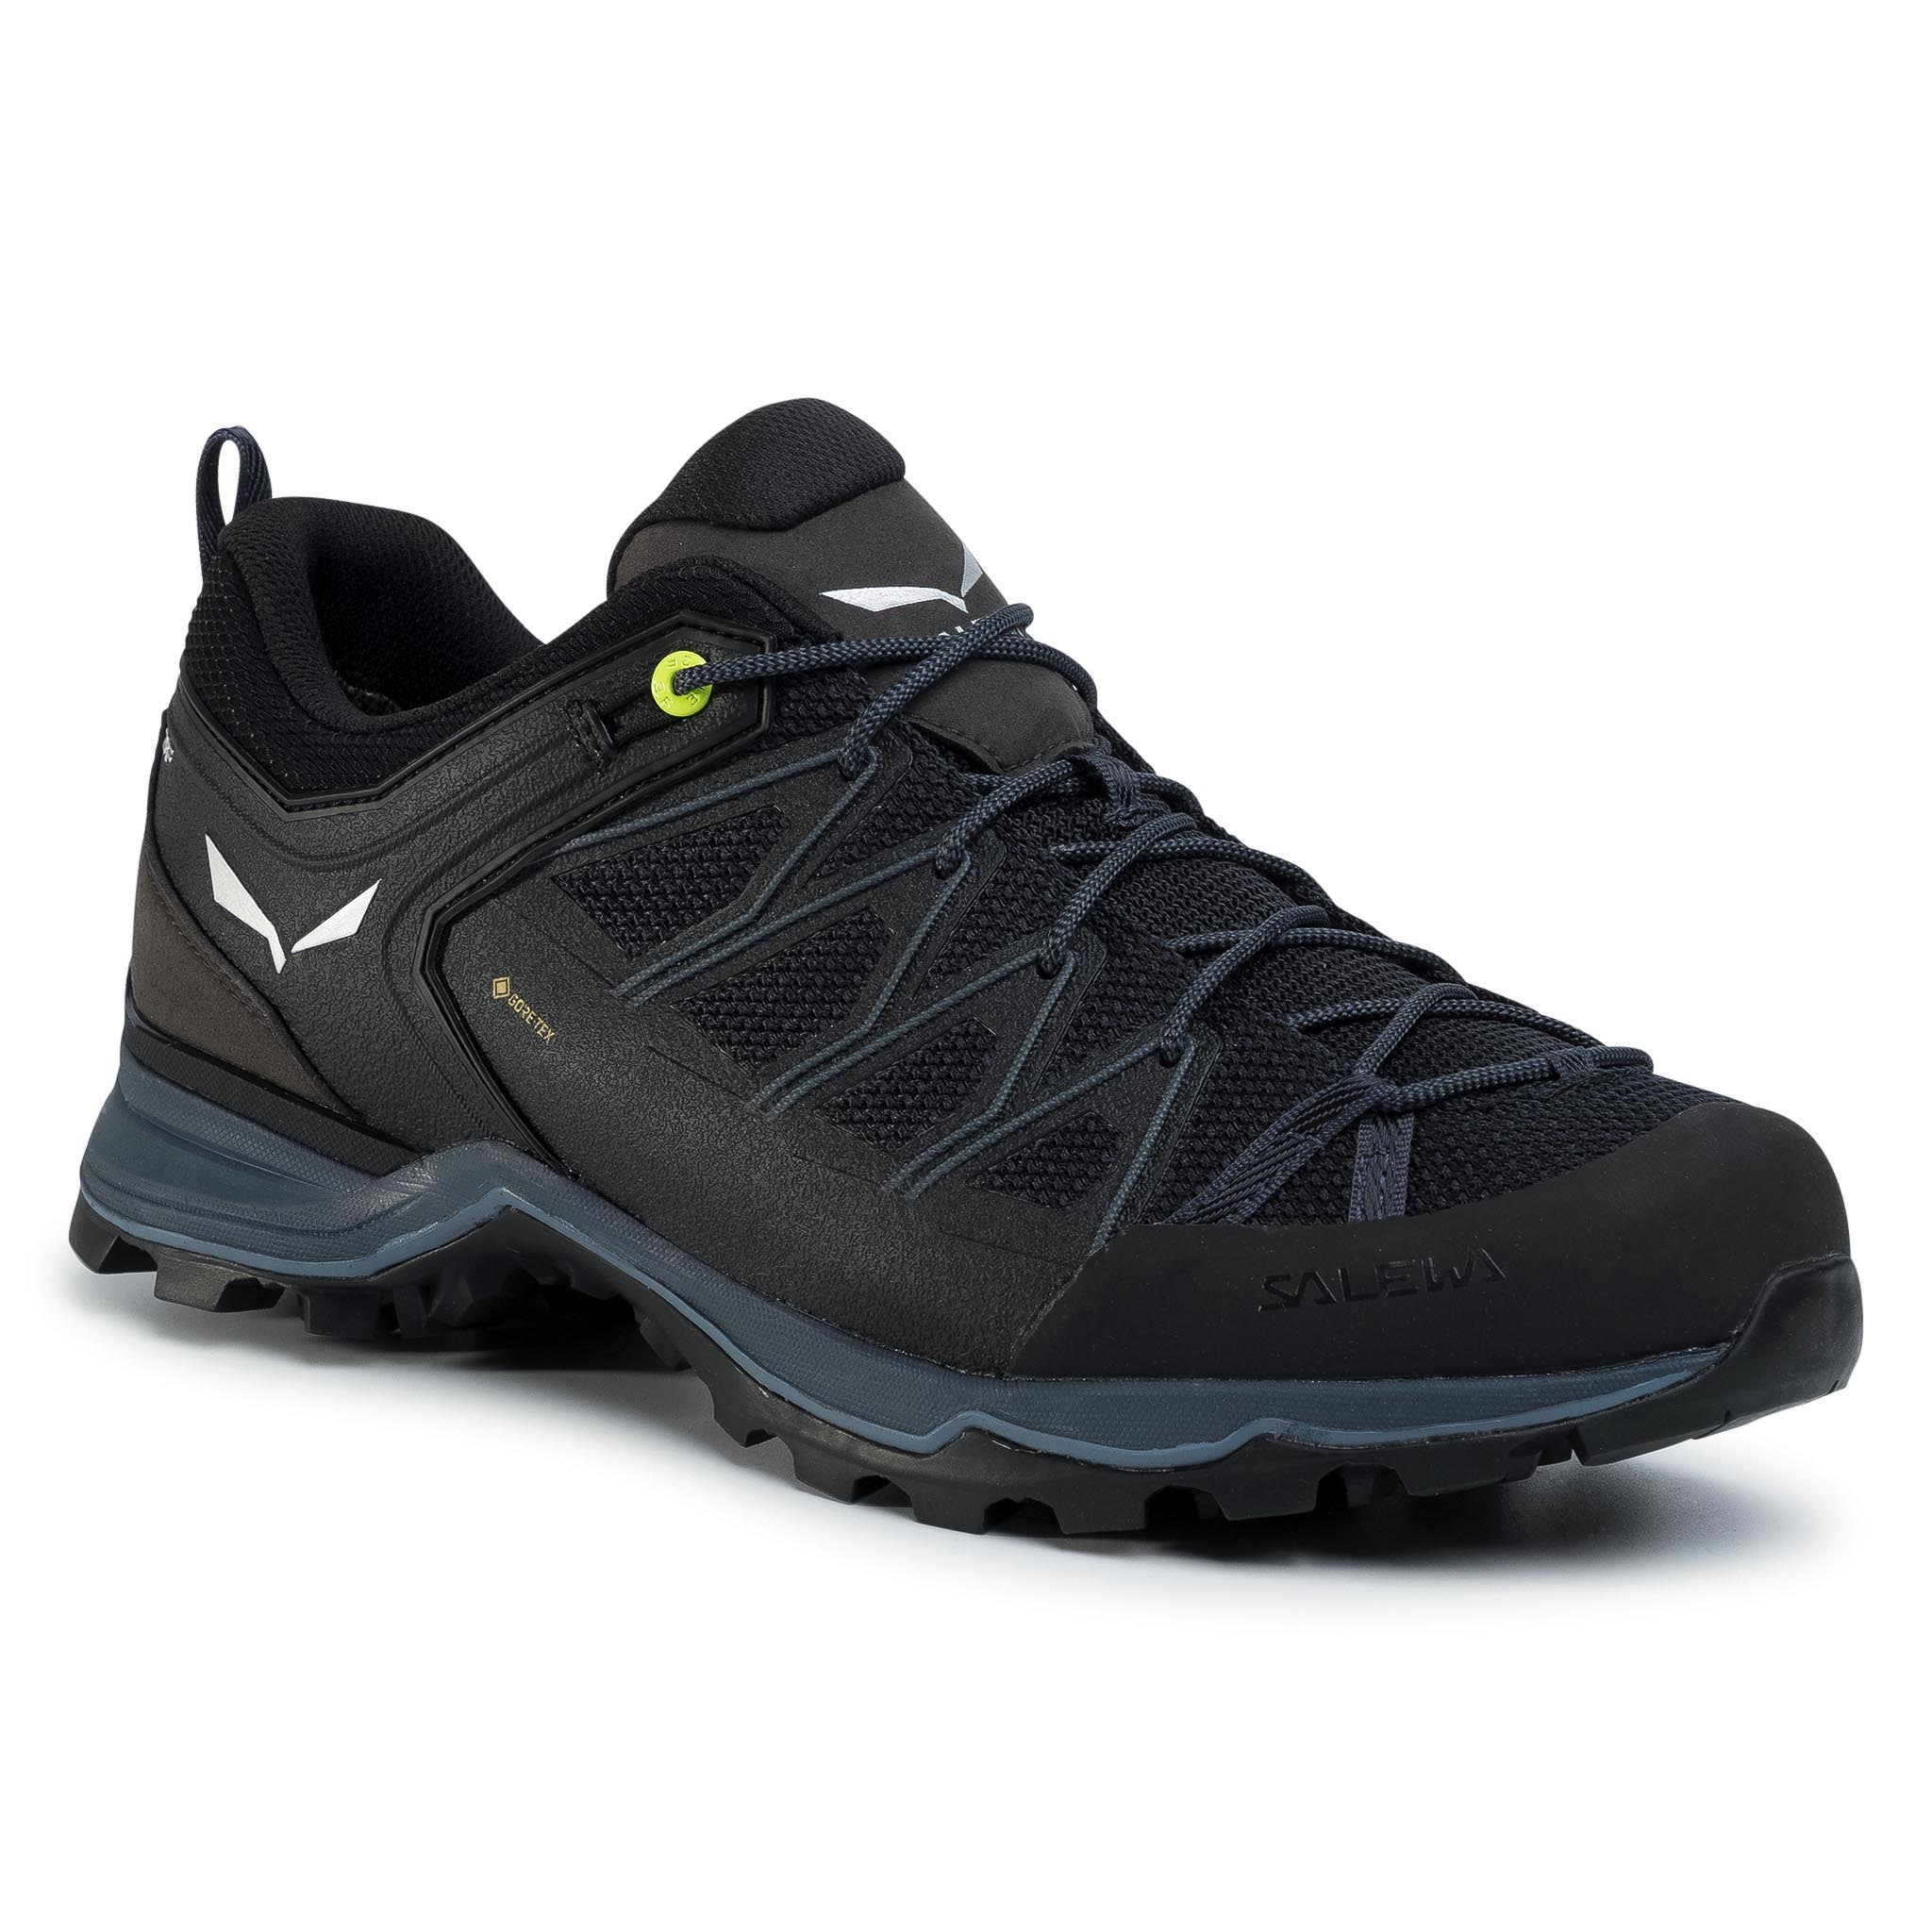 Trekkings SALEWA - Ms Mtn Trainer Lite Gtx GORE-TEX 61361-0971 Black/Black